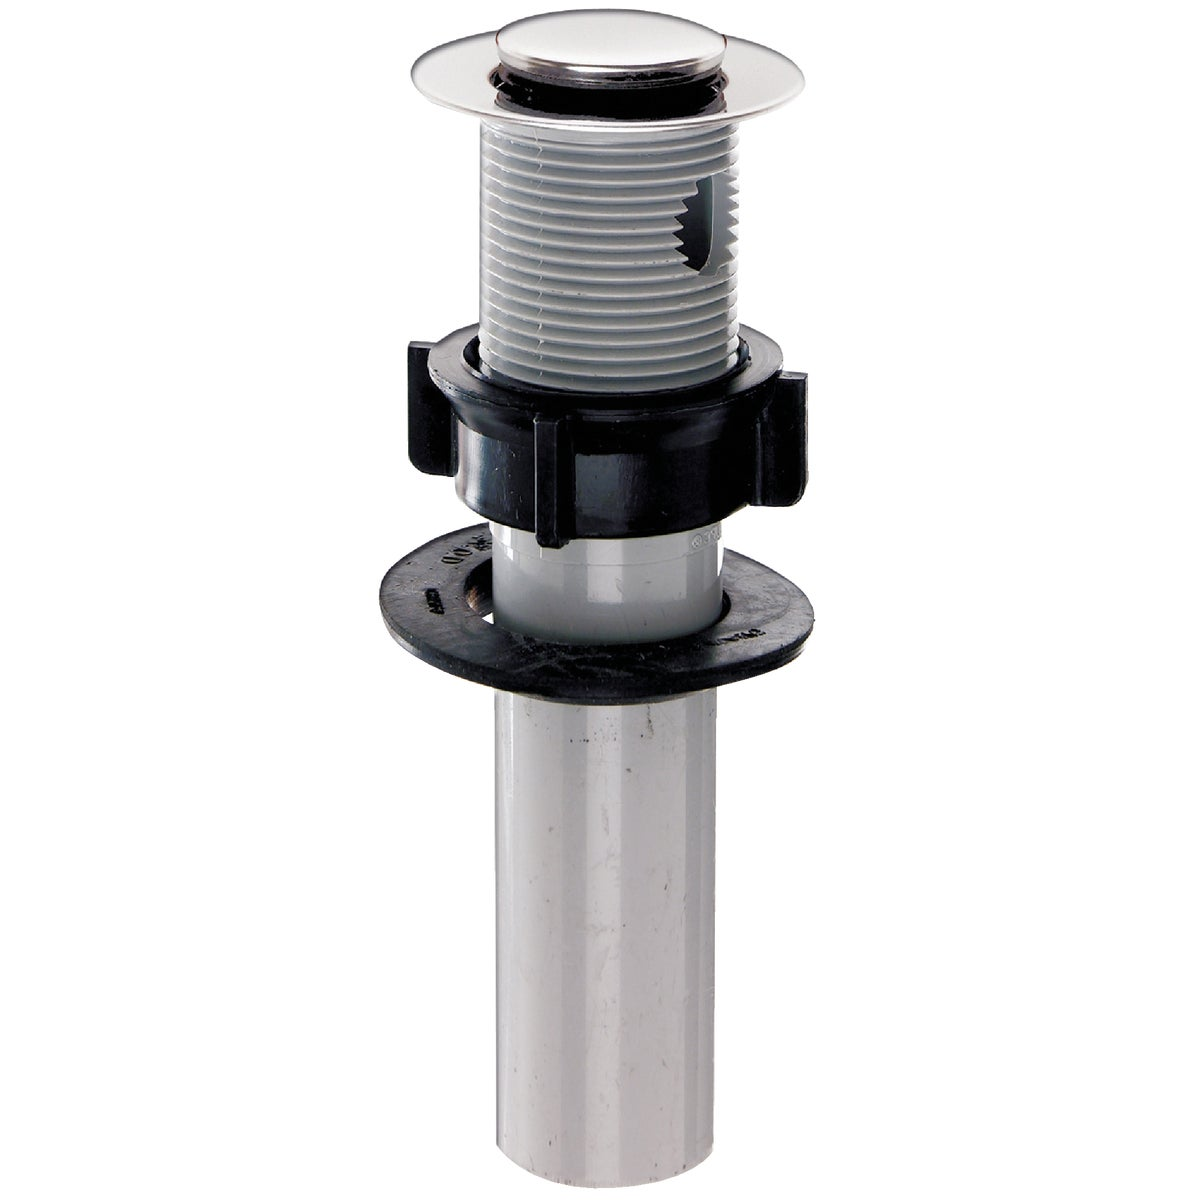 1-1/4 LIFT 'N LOK DRAIN - 436228 by Plumb Pak/keeney Mfg